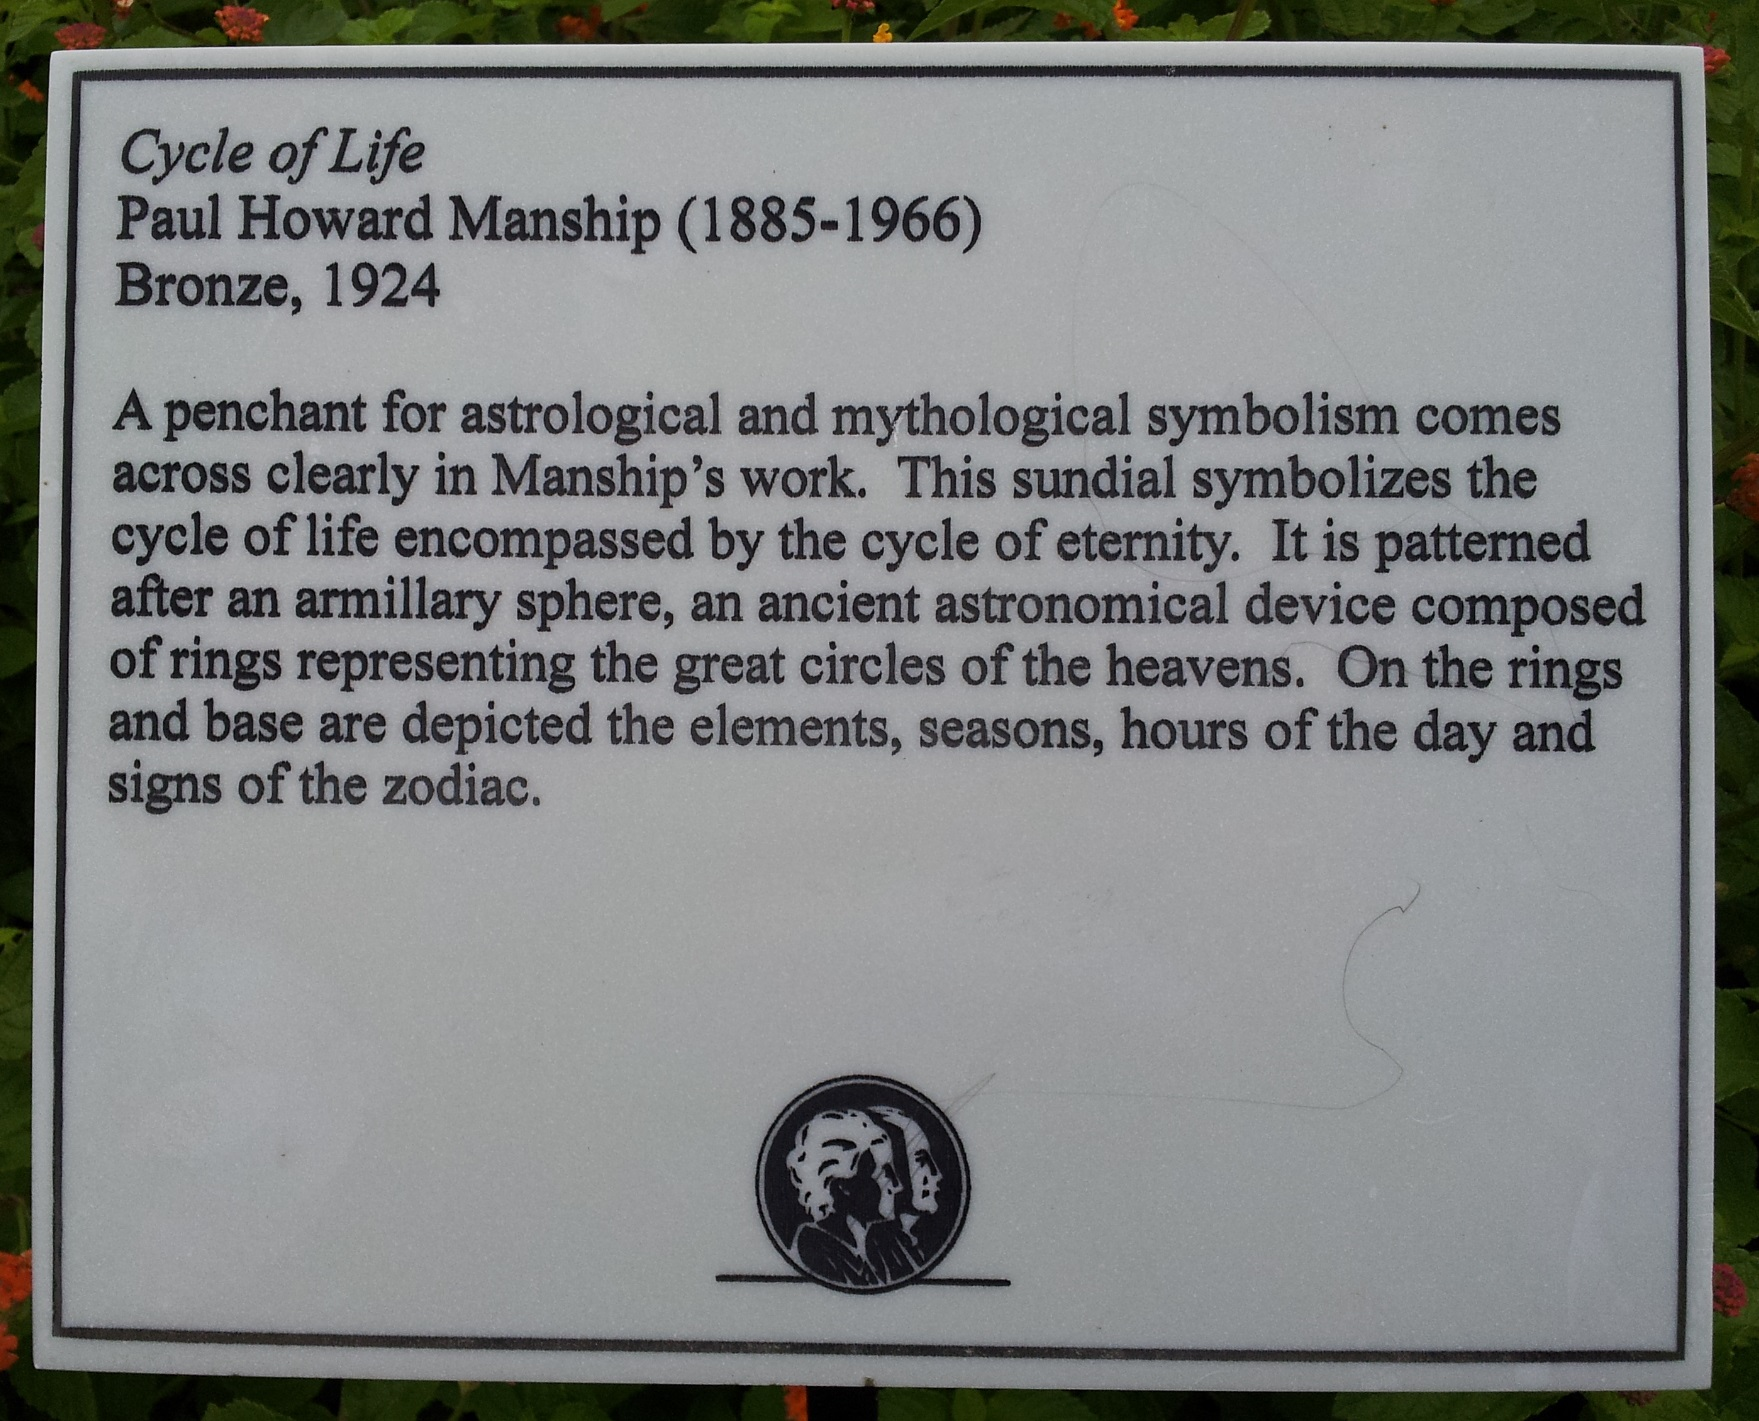 Cycle of Life by Paul Howard Manship (plaque, Brookgreen Gardens)